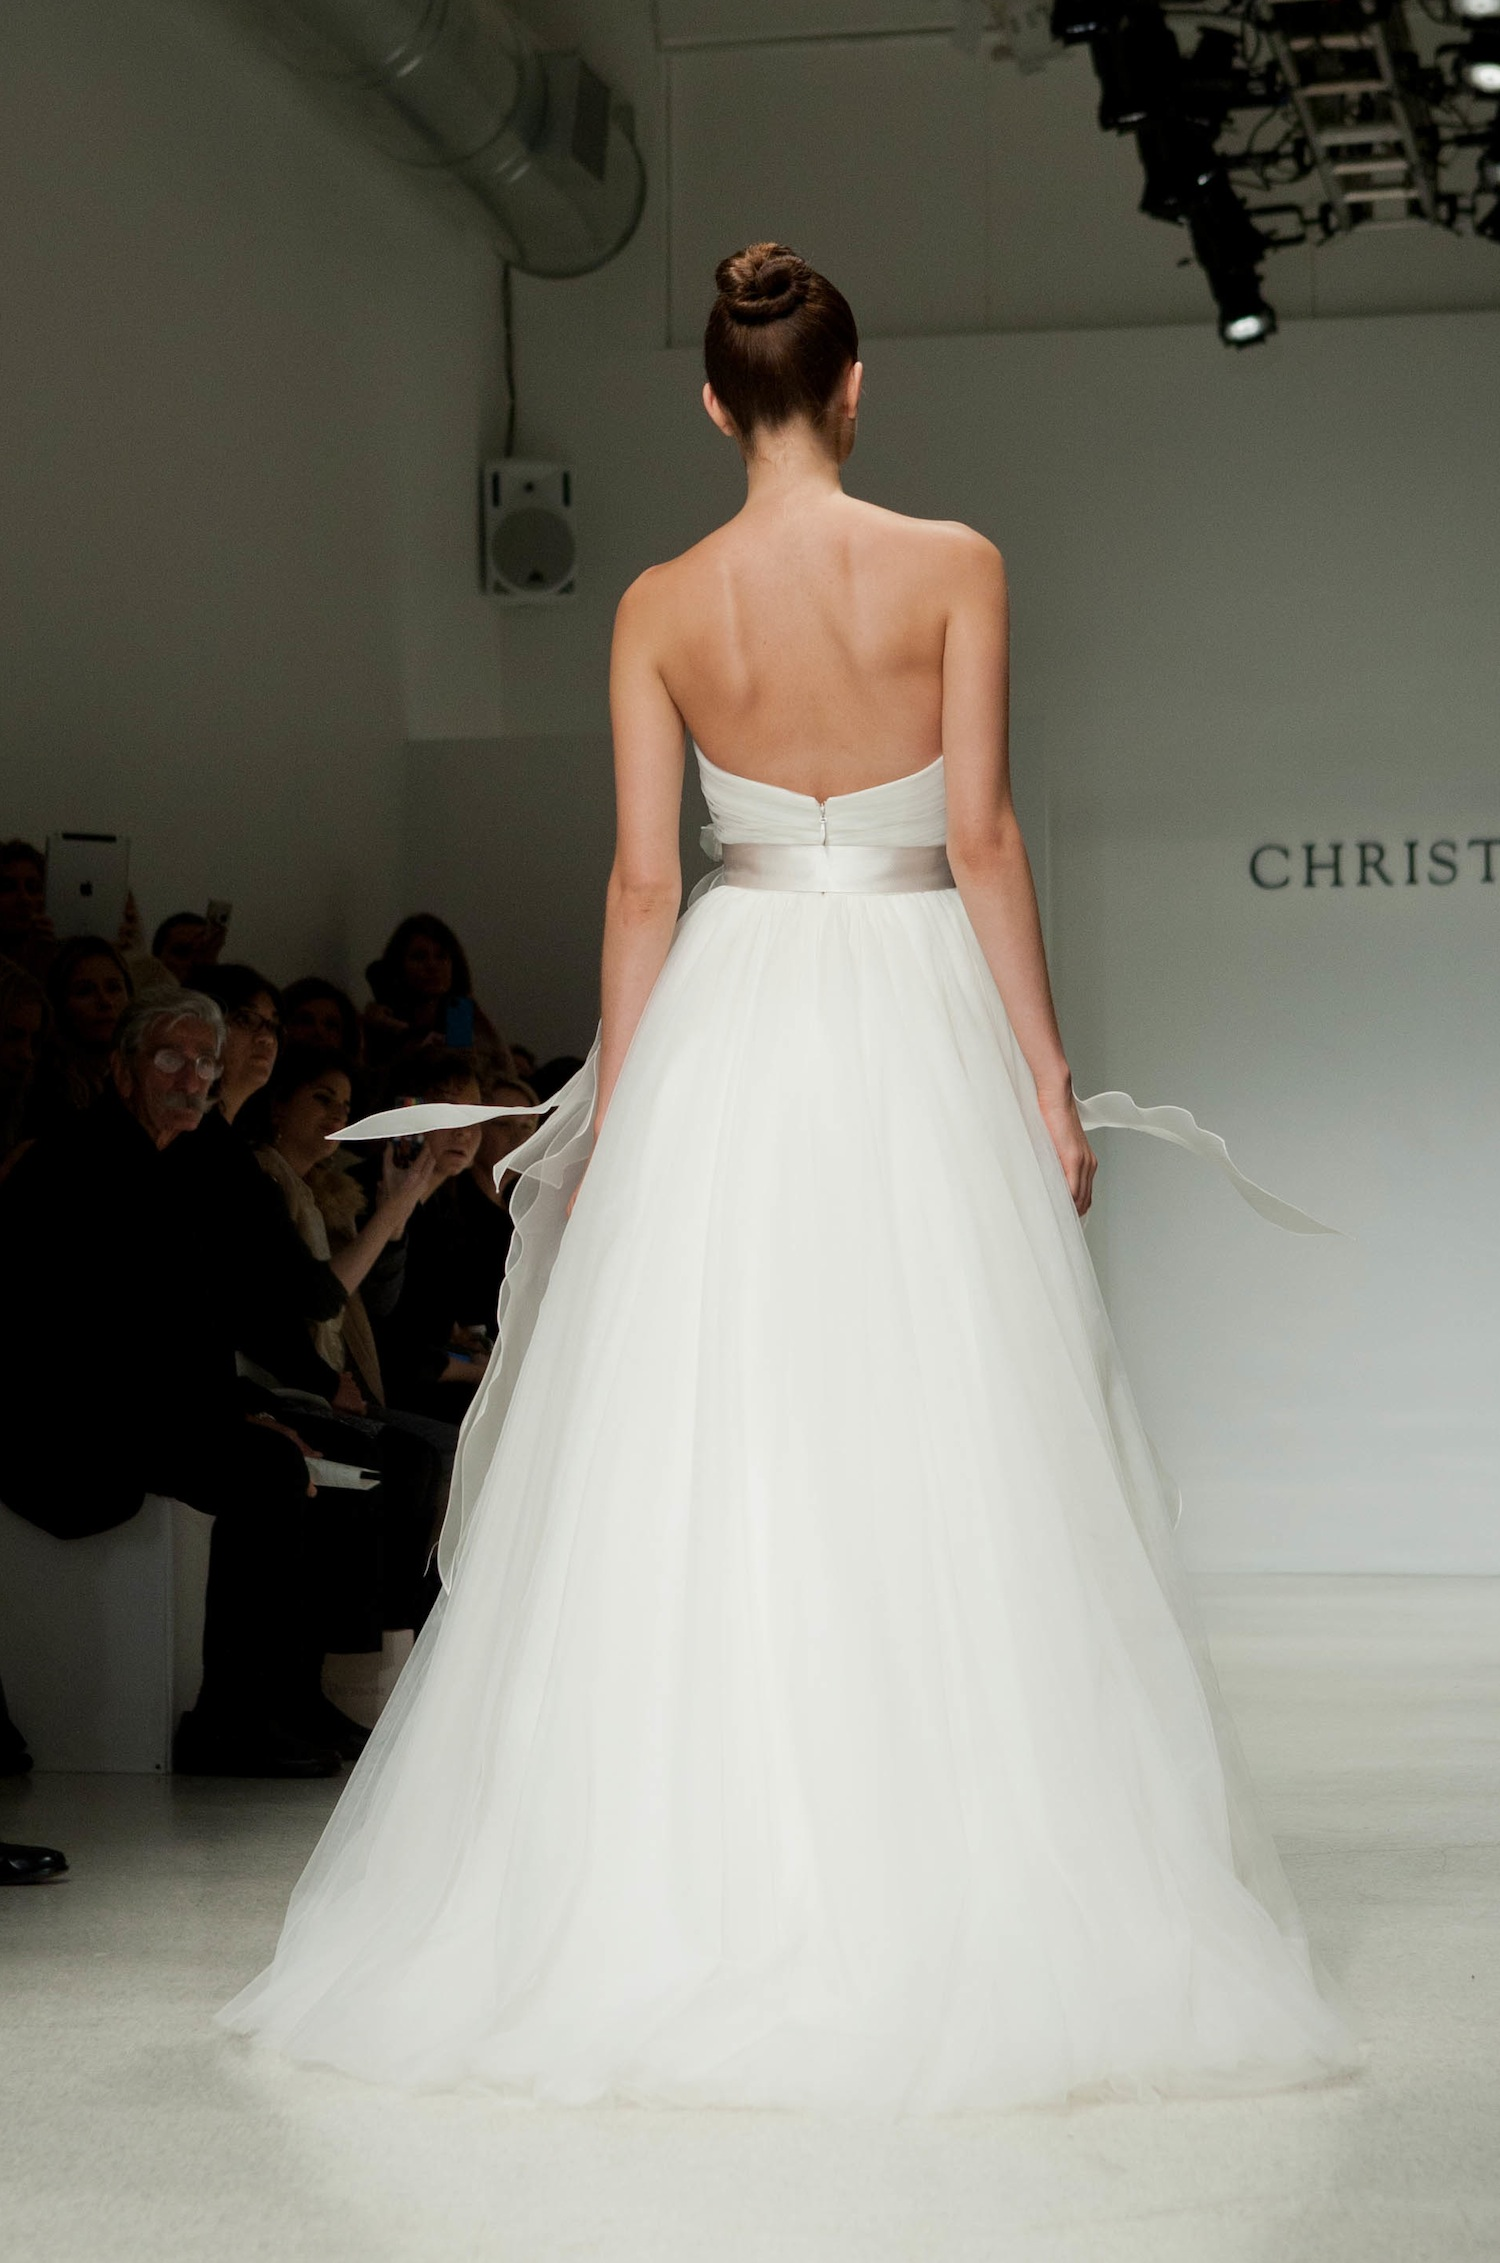 2012 wedding dress christos bridal gowns charlotte for Wedding dress charlotte nc